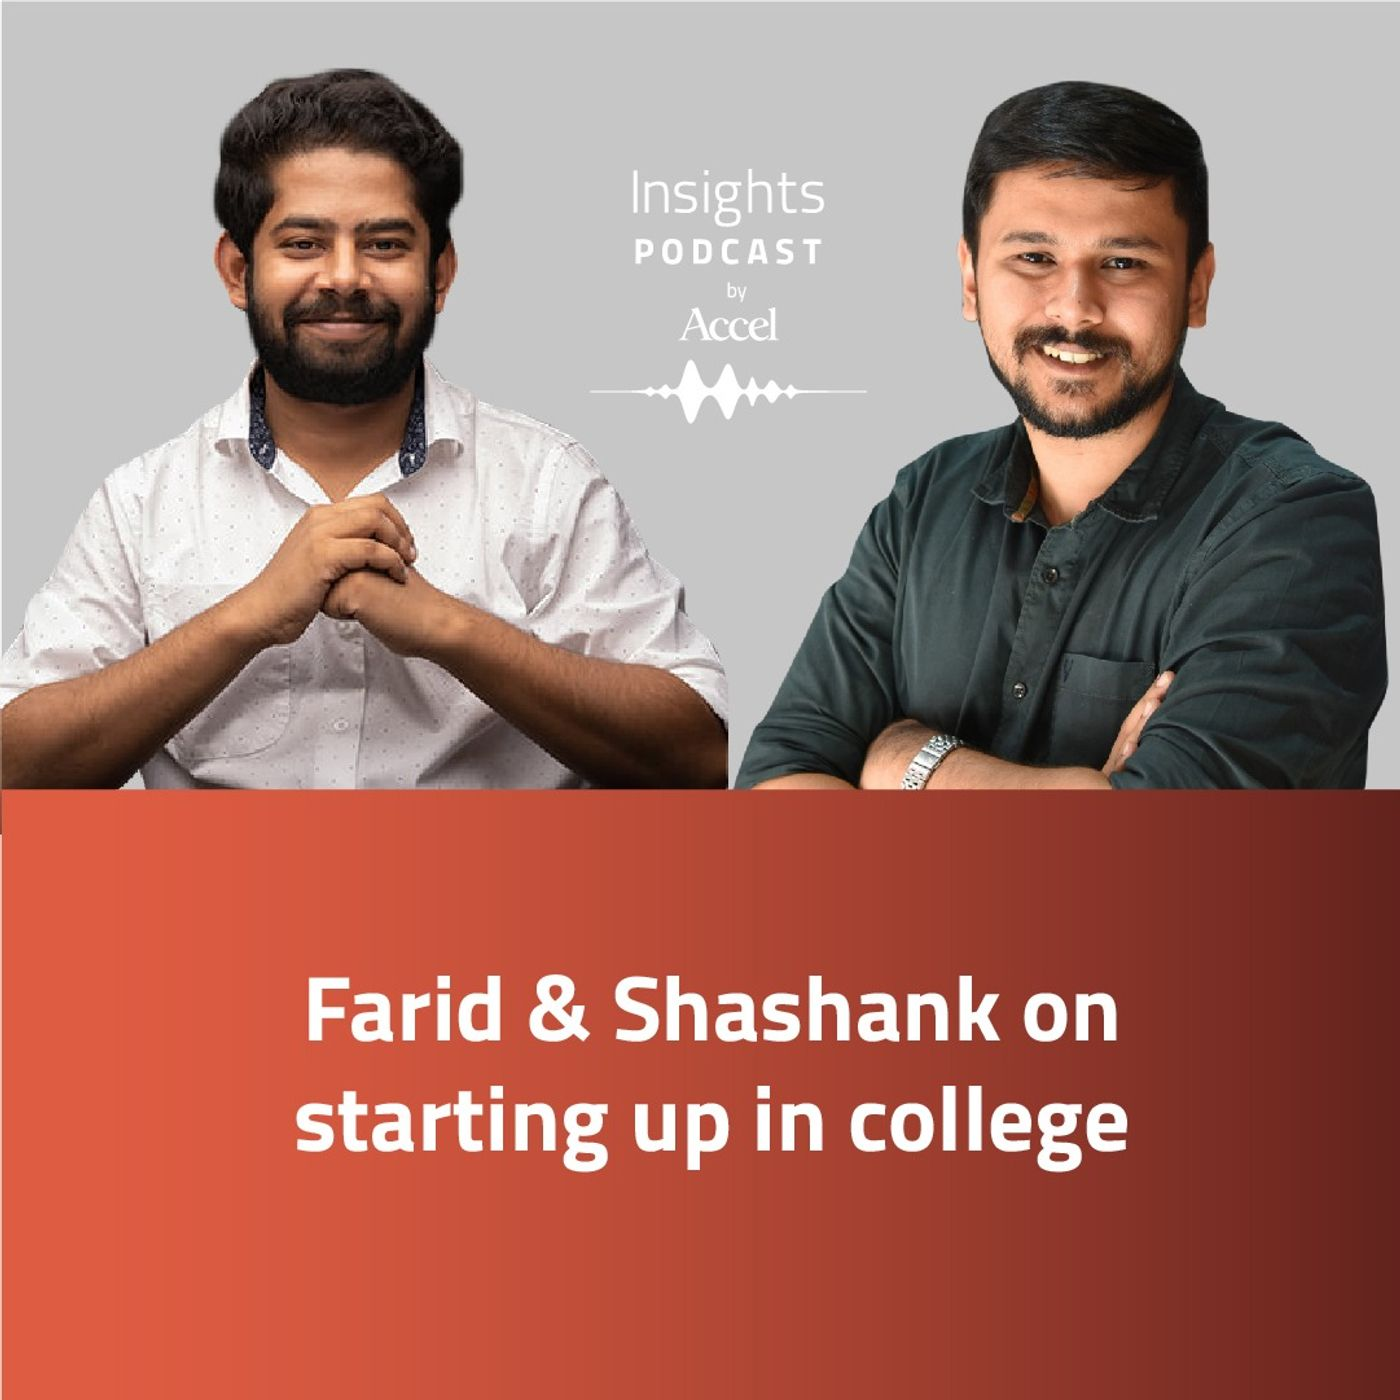 INSIGHTS #54 - Farid & Shashank on starting up in college